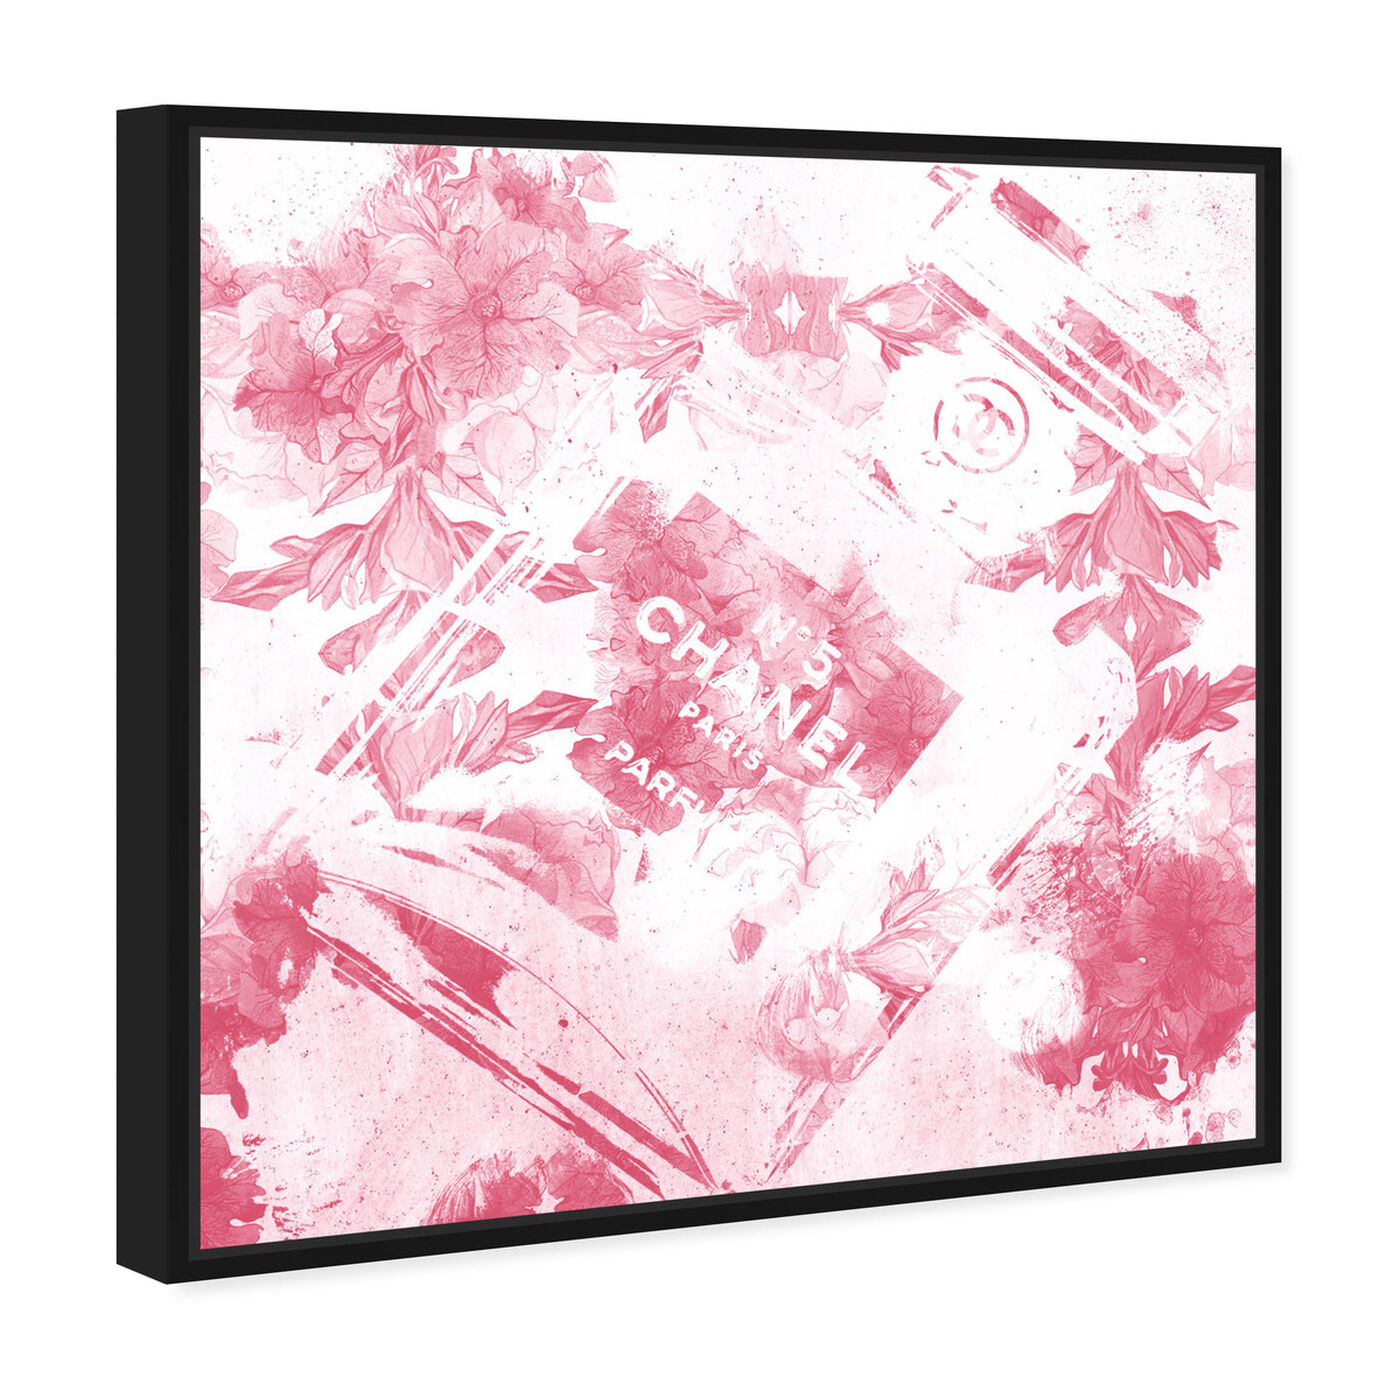 Angled view of Blush Flower Scent featuring fashion and glam and perfumes art.